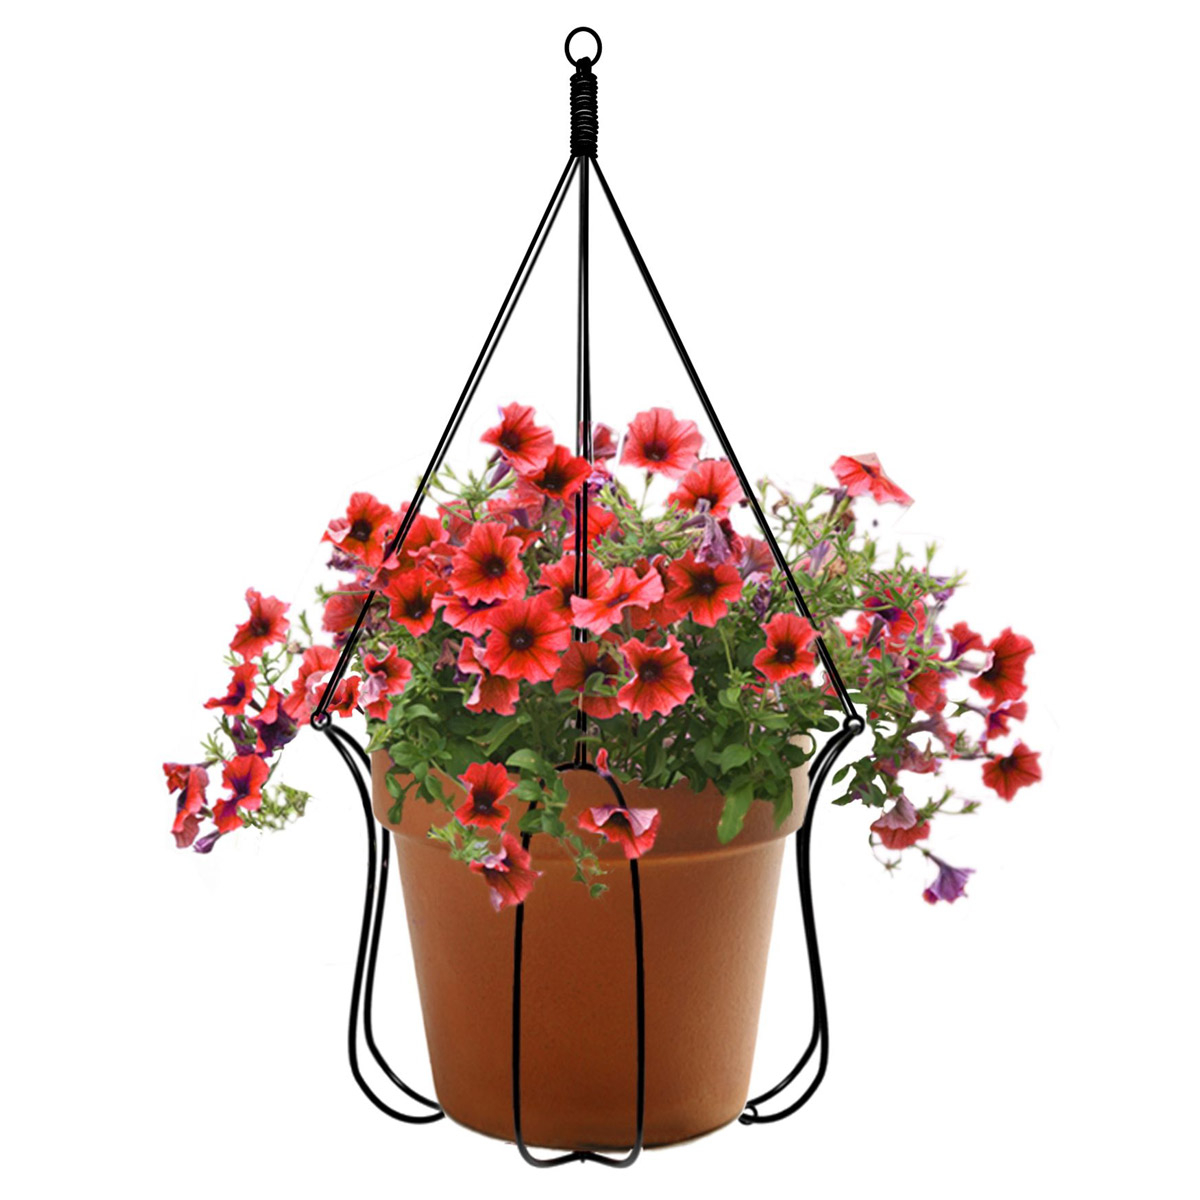 Adjustable Plant Hanger   Turns Almost Any Pot Into A Hanging Planter